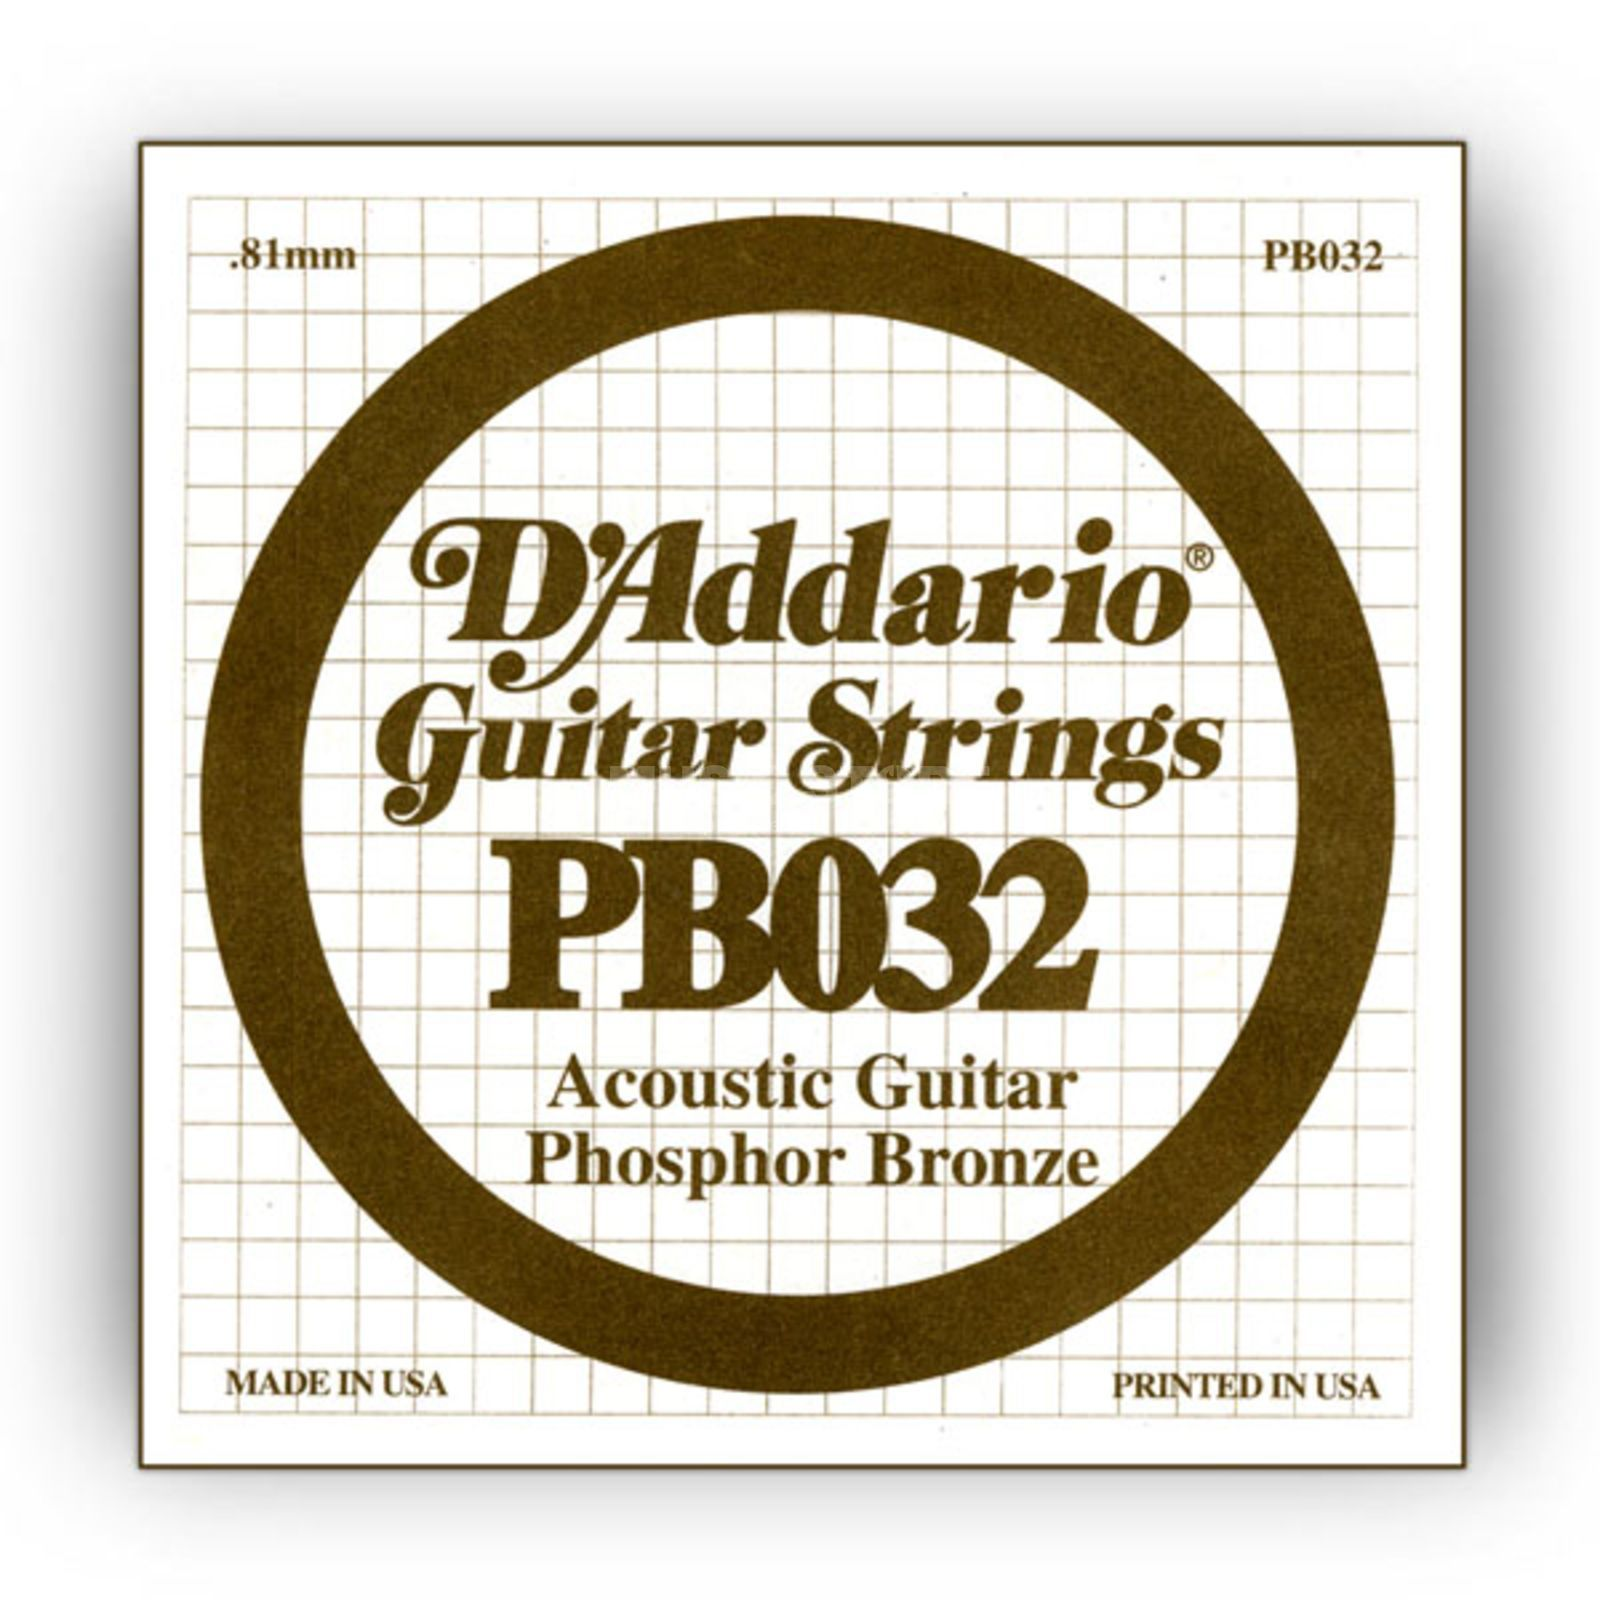 D'Addario Single String PB032 Phosphor Bronze Immagine prodotto